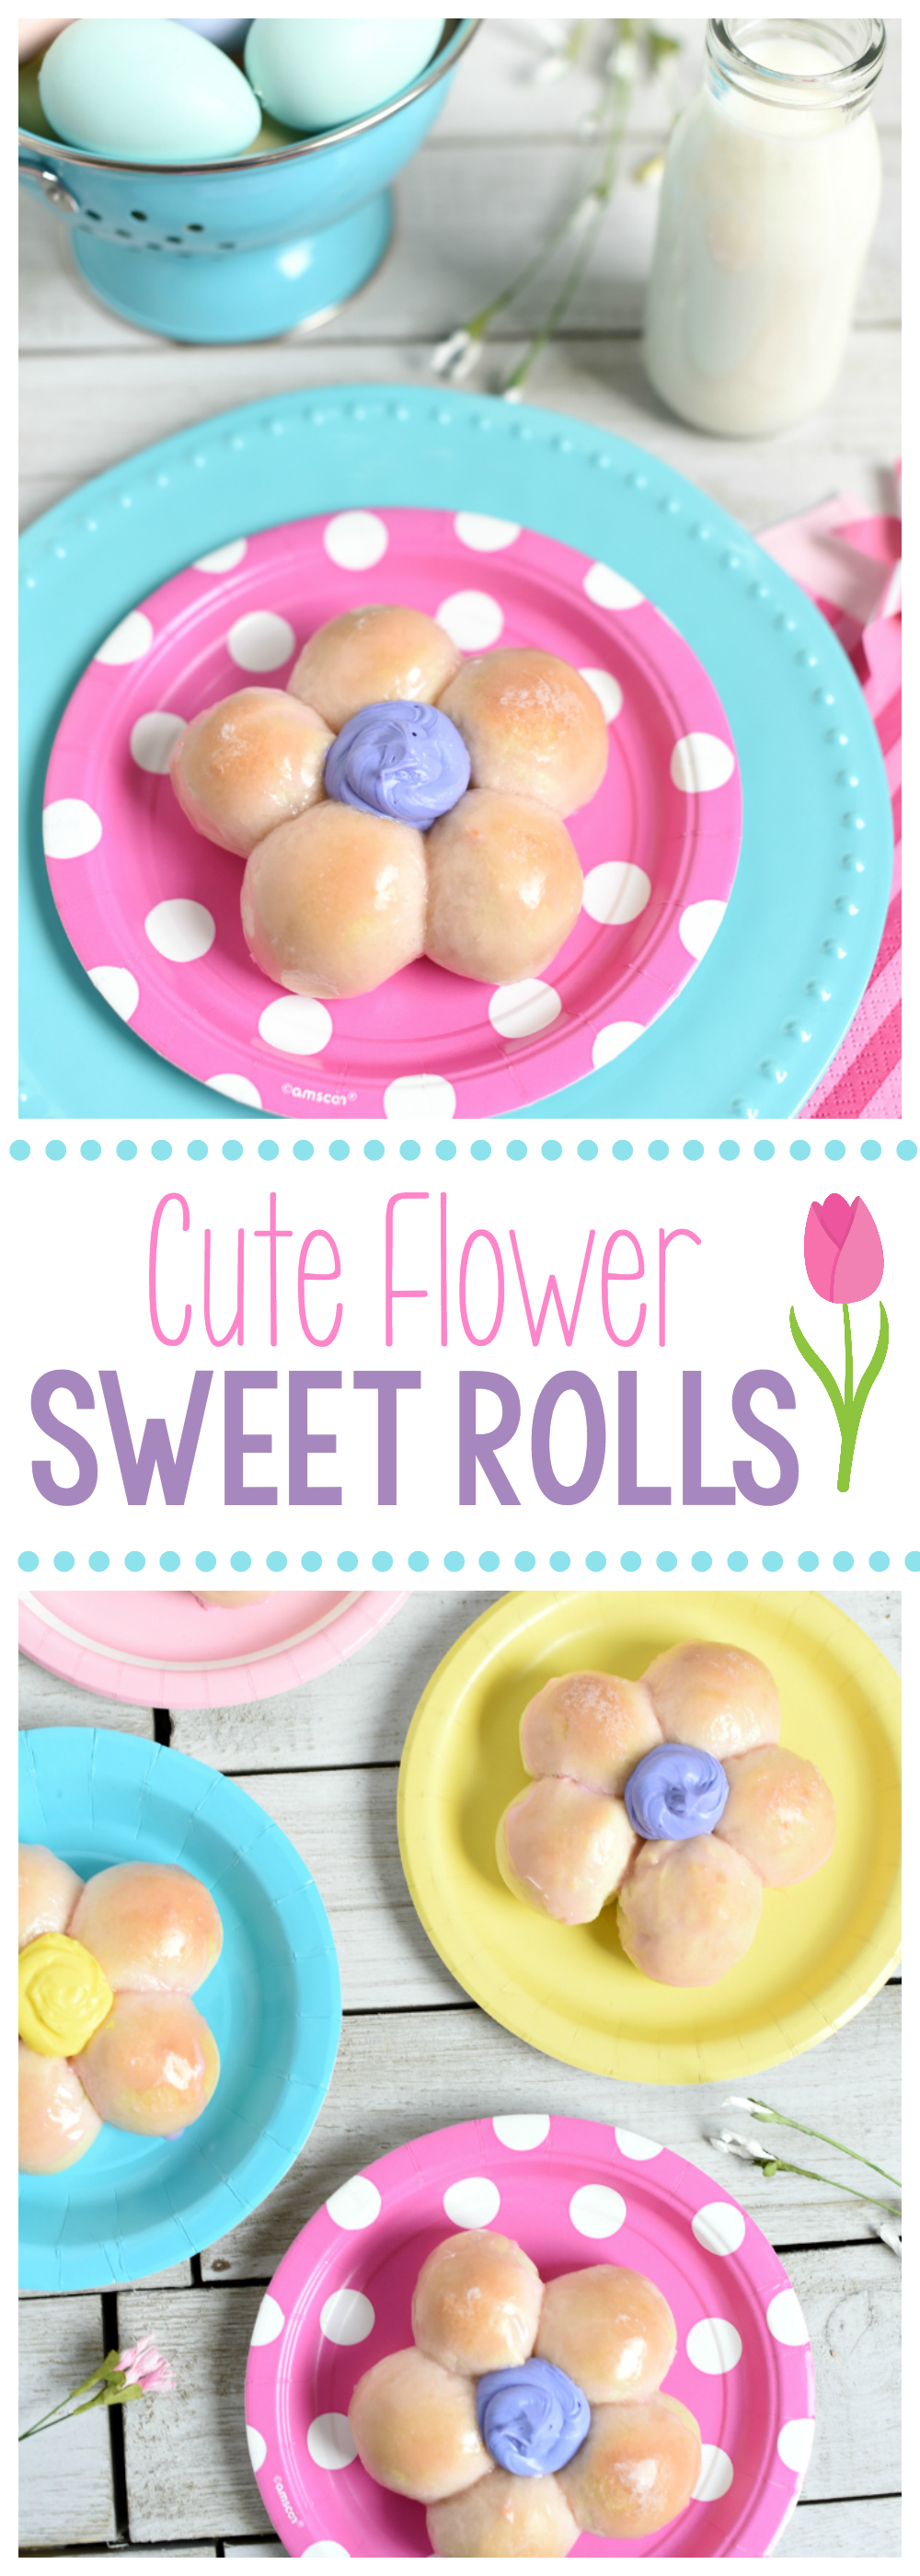 Sweet Rolls Shaped Like Flowers for Easter Brunch or Mother's Day or just for a Spring treat. They are easy to make and taste so good! #bake #donuts #breakfast #easter #spring #brunch